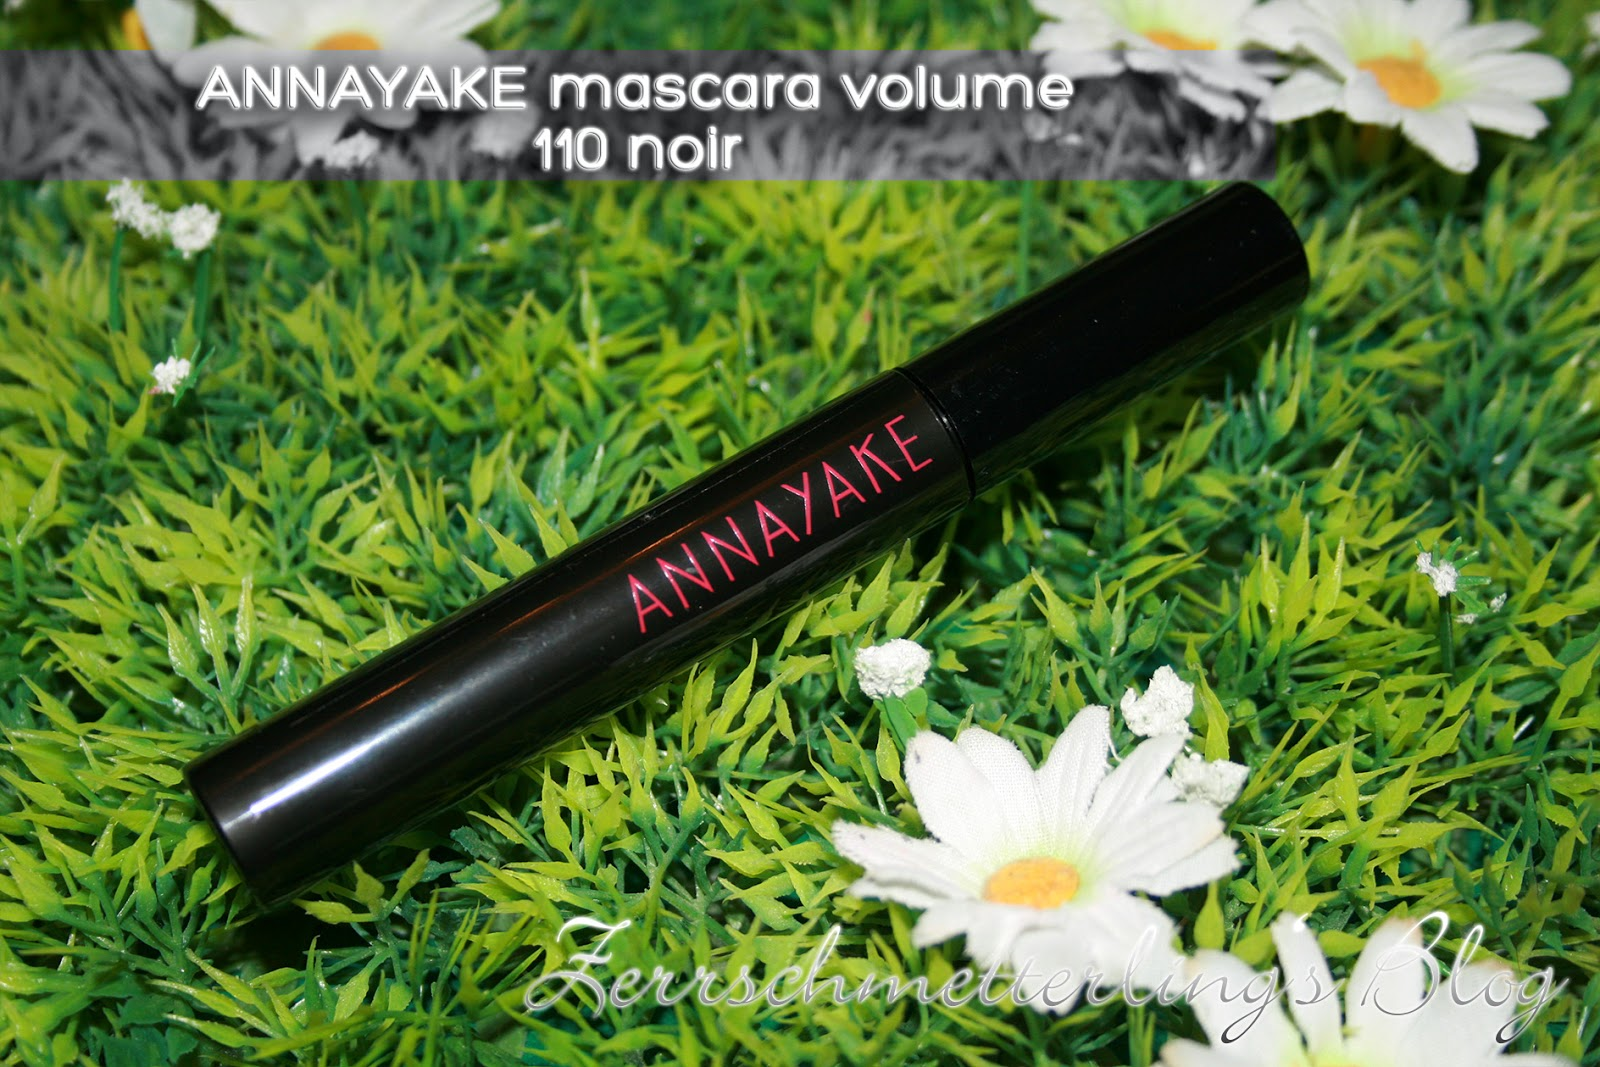 Zerrschmetterlings Blog: [REVIEW+SWATCHES] ANNAYAKE volume mascara ...